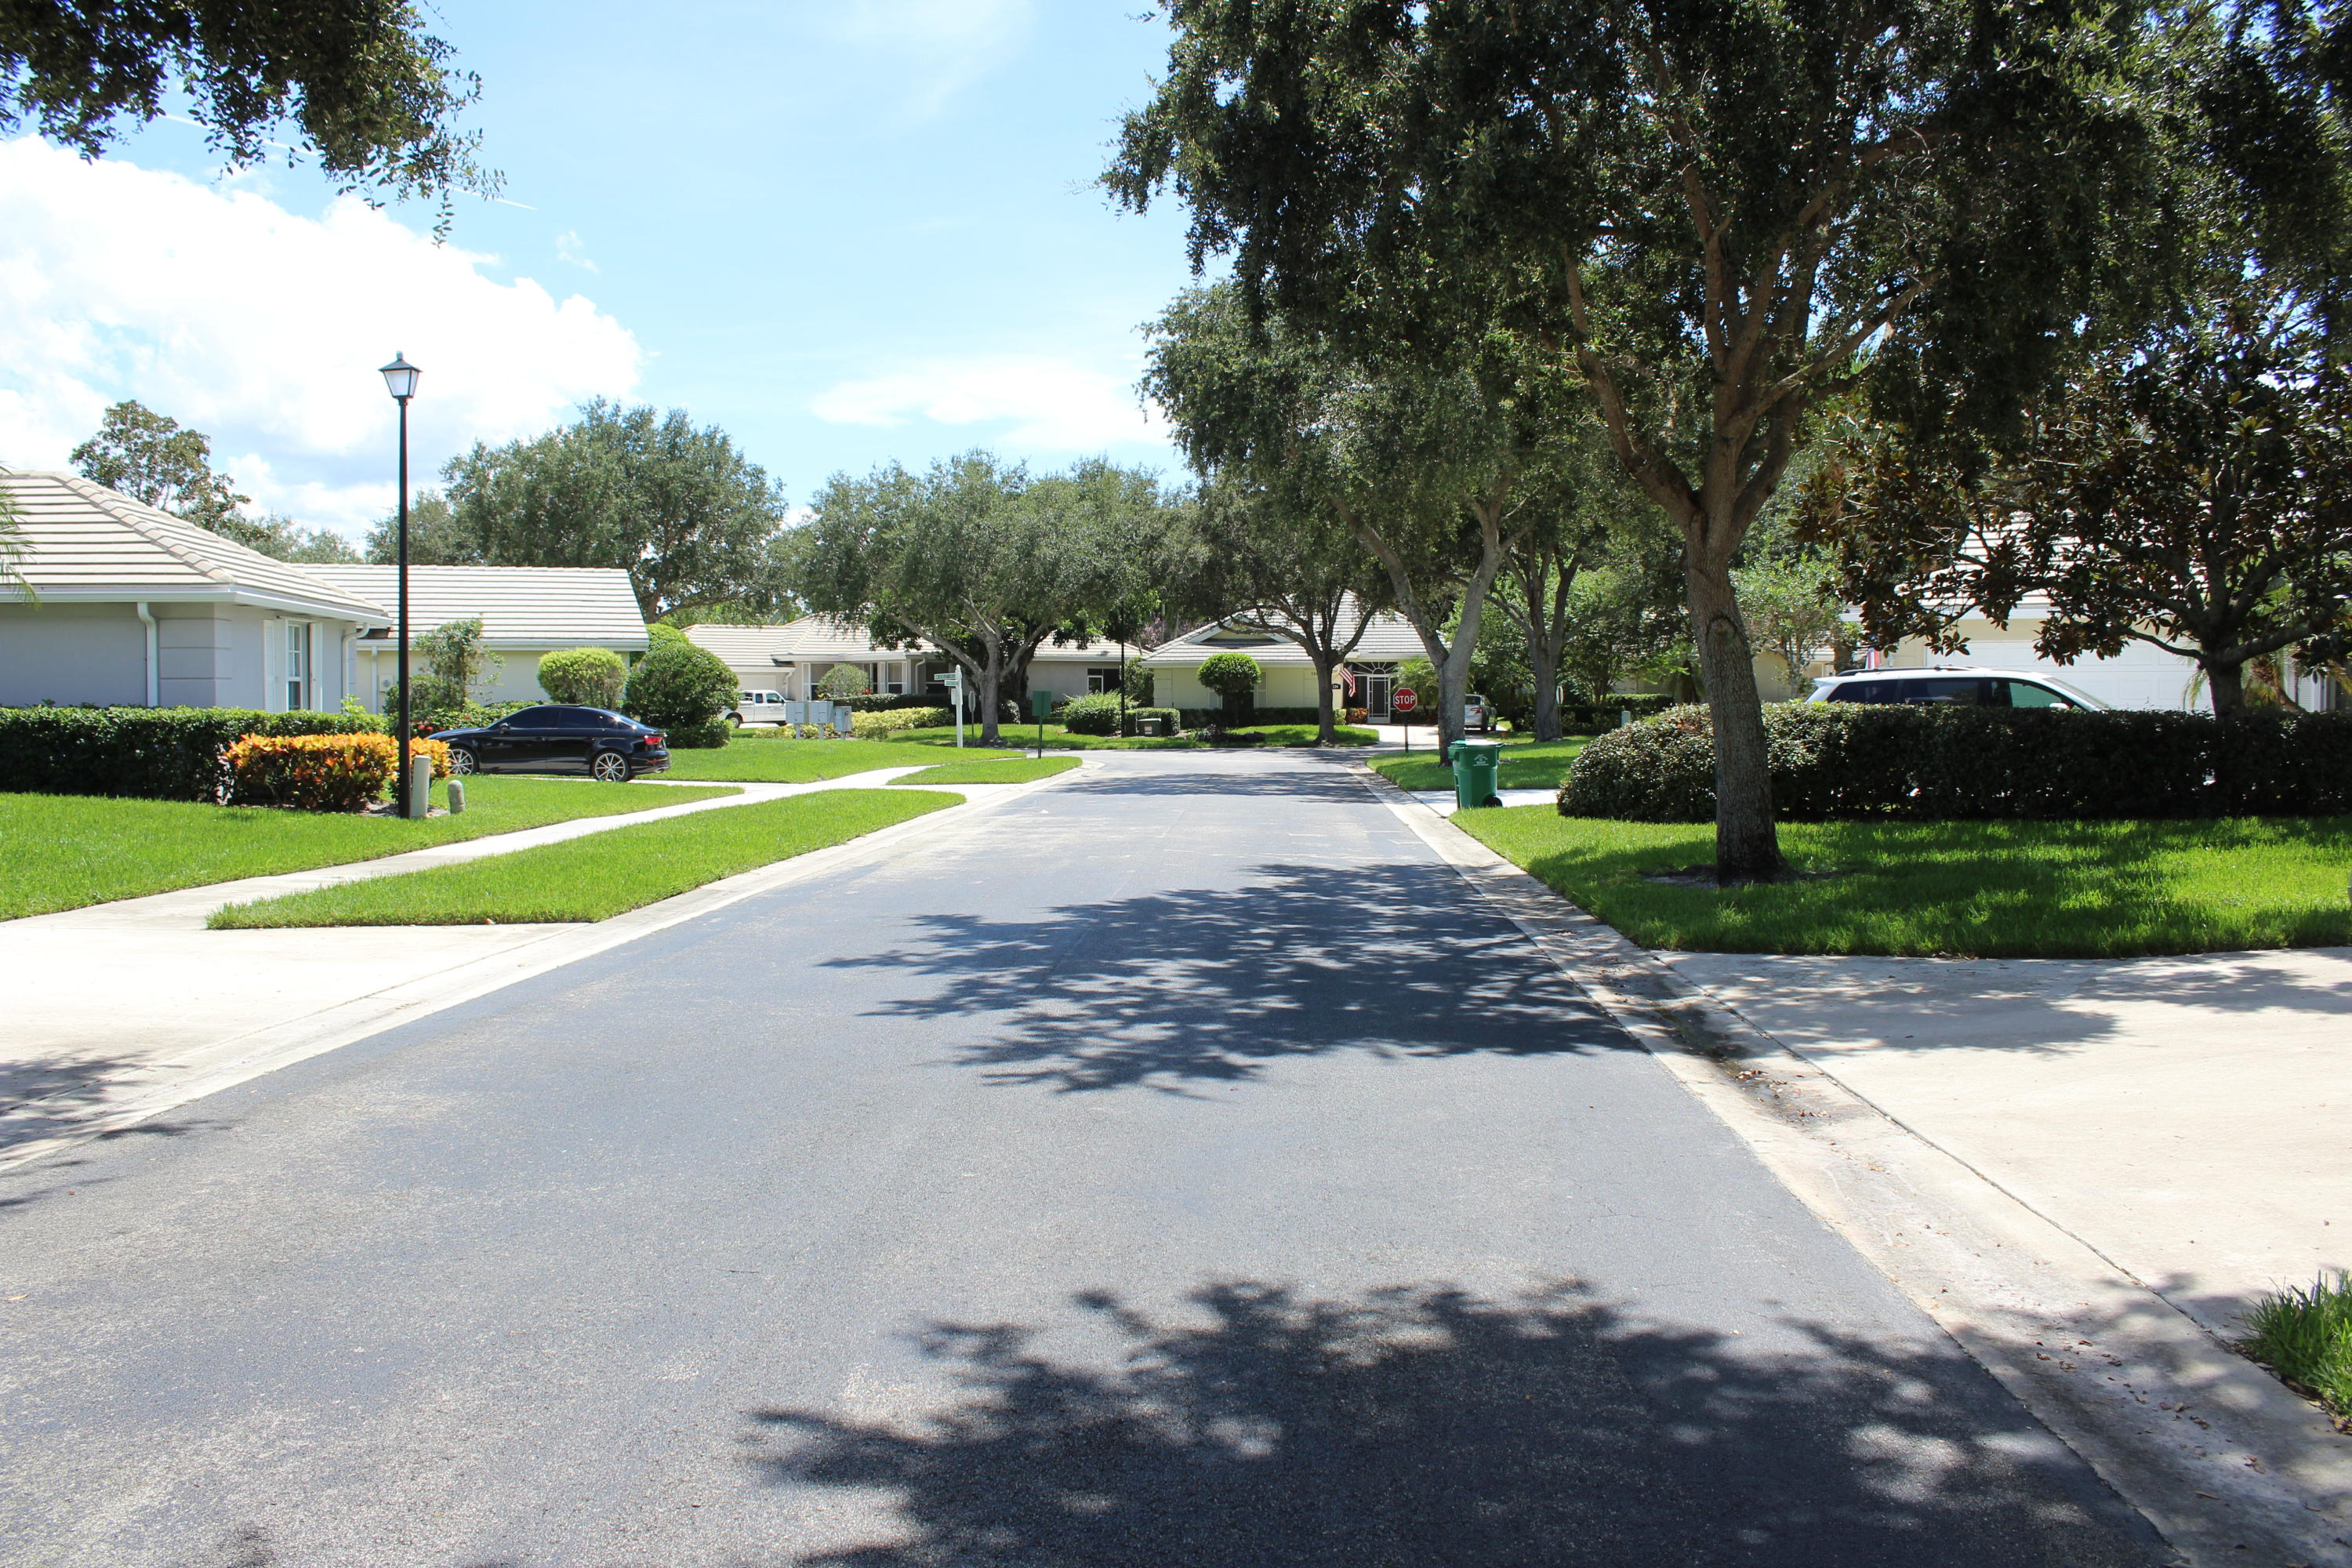 LAKES AT ST LUCIE WEST-PLAT 22- LOT 93 (926-1259: 2915-2676)